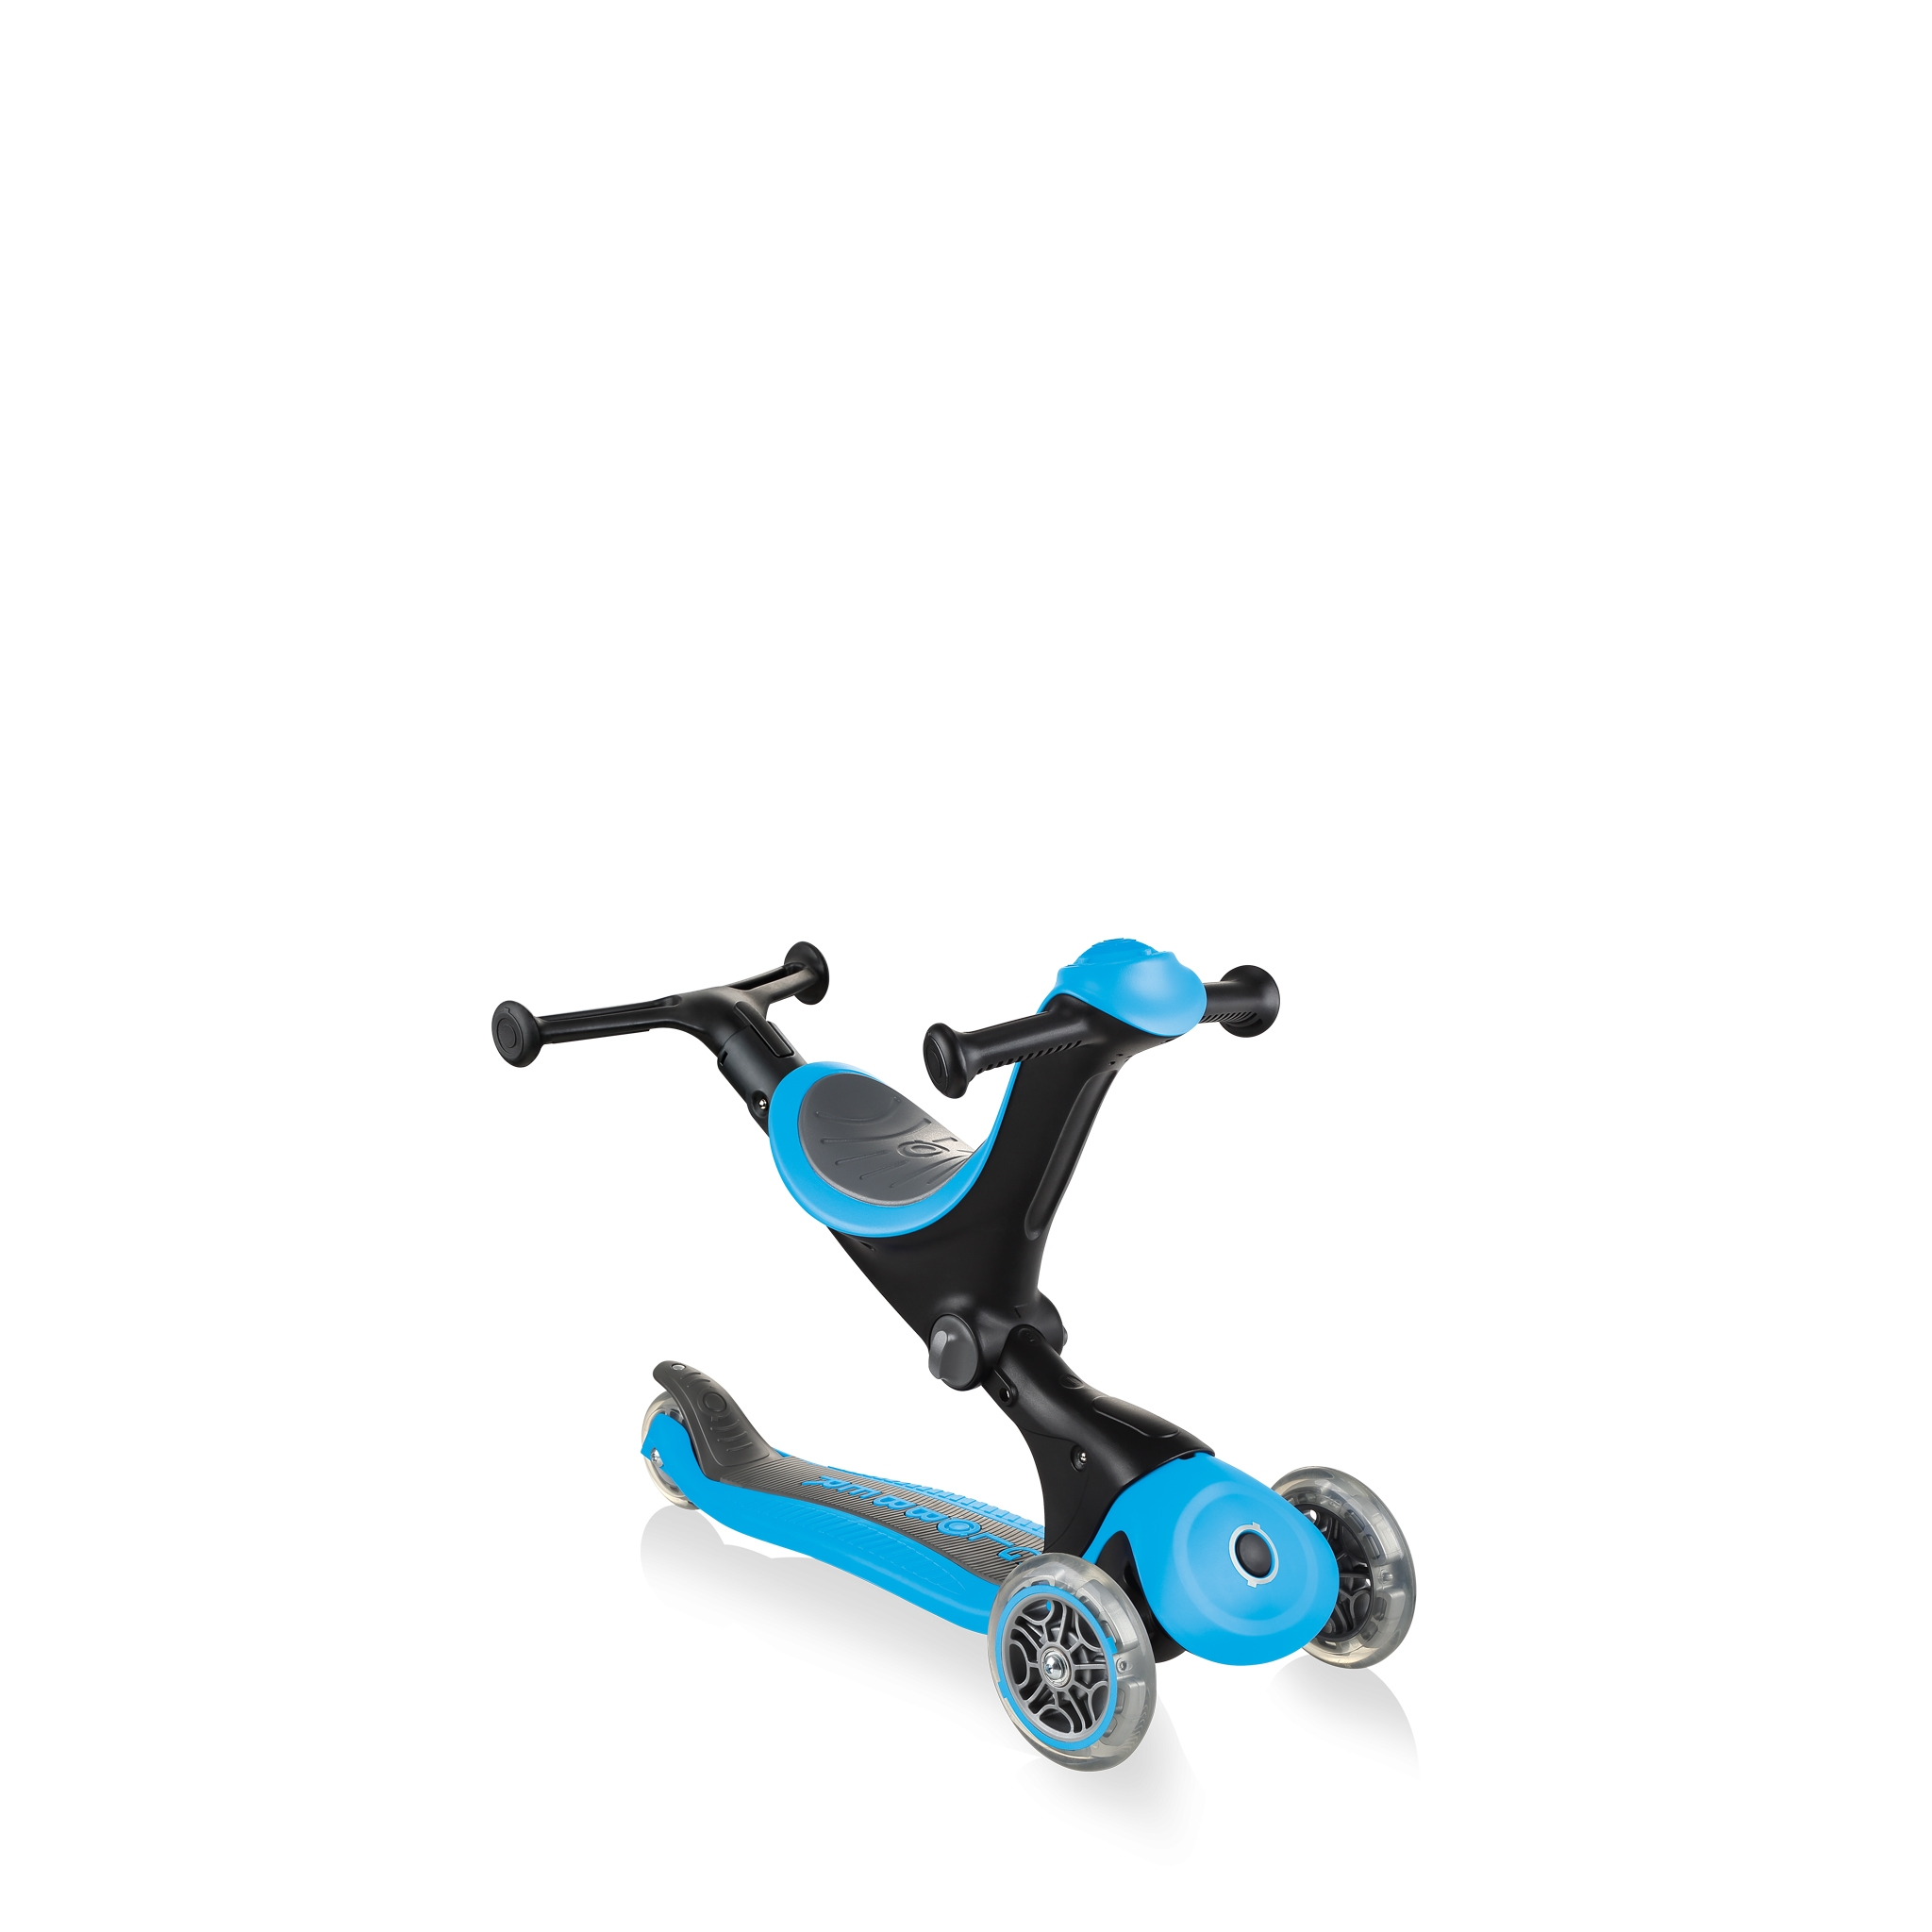 GO-UP-DELUXE-walking-bike-mode-sky-blue 3